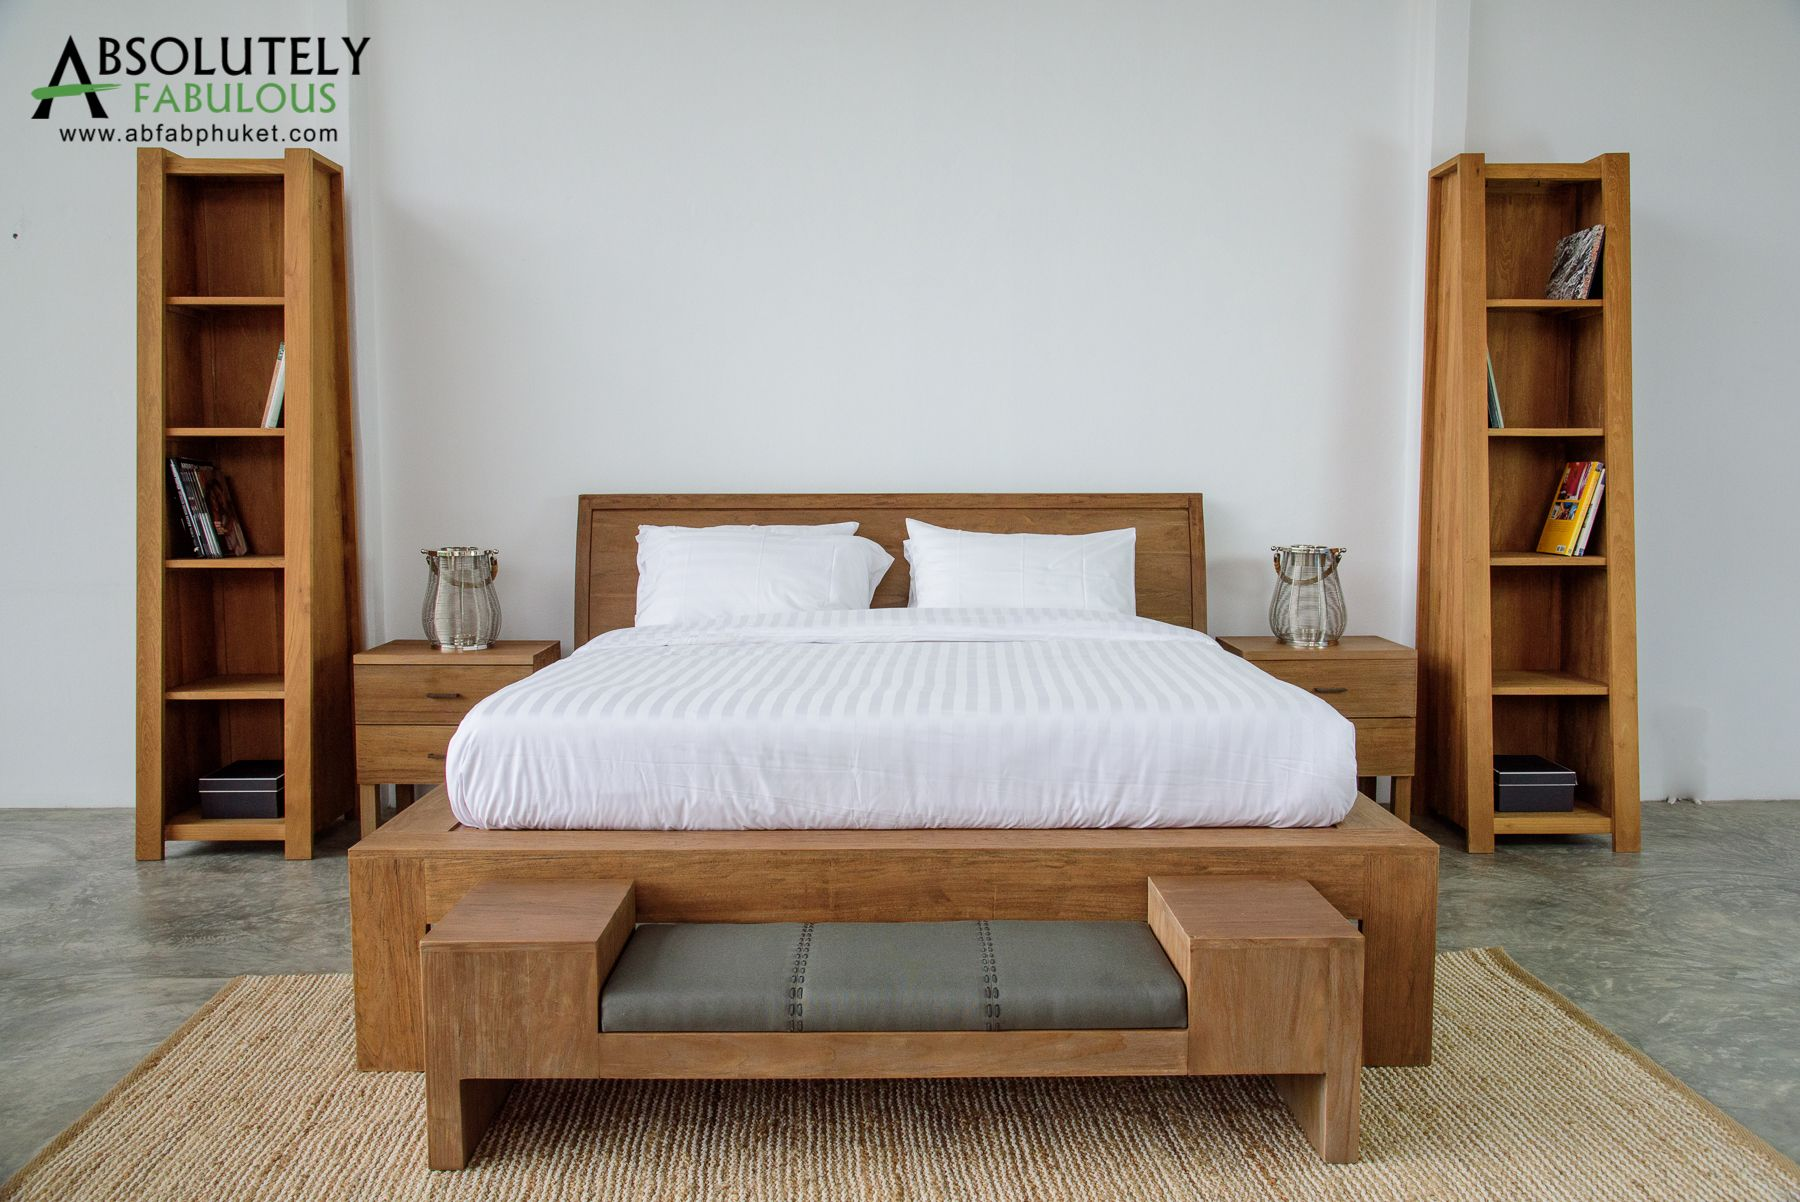 our beautiful teak wood furniture and beds are perfect for rh pinterest com